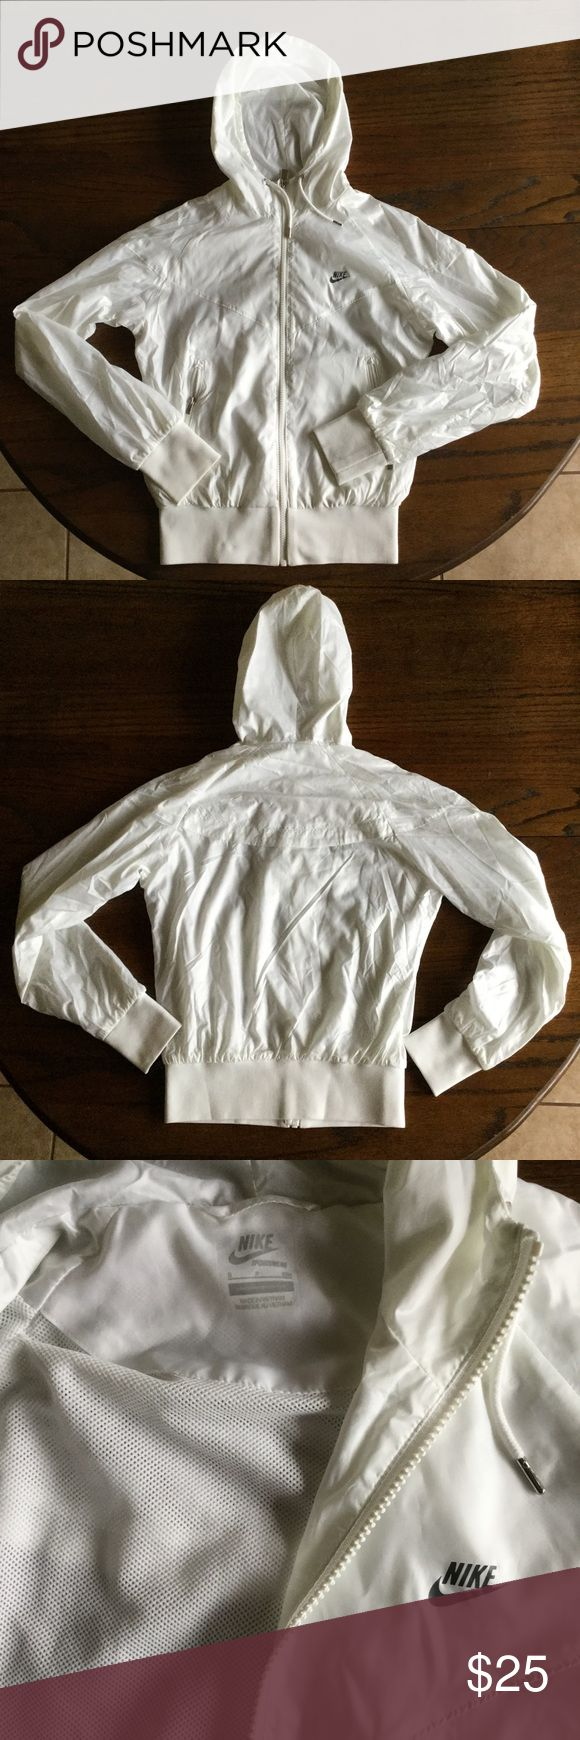 White Nike Windrunner Running jacket Good condition, lightly used, no stains rips or tears. All white Nike Jackets & Coats